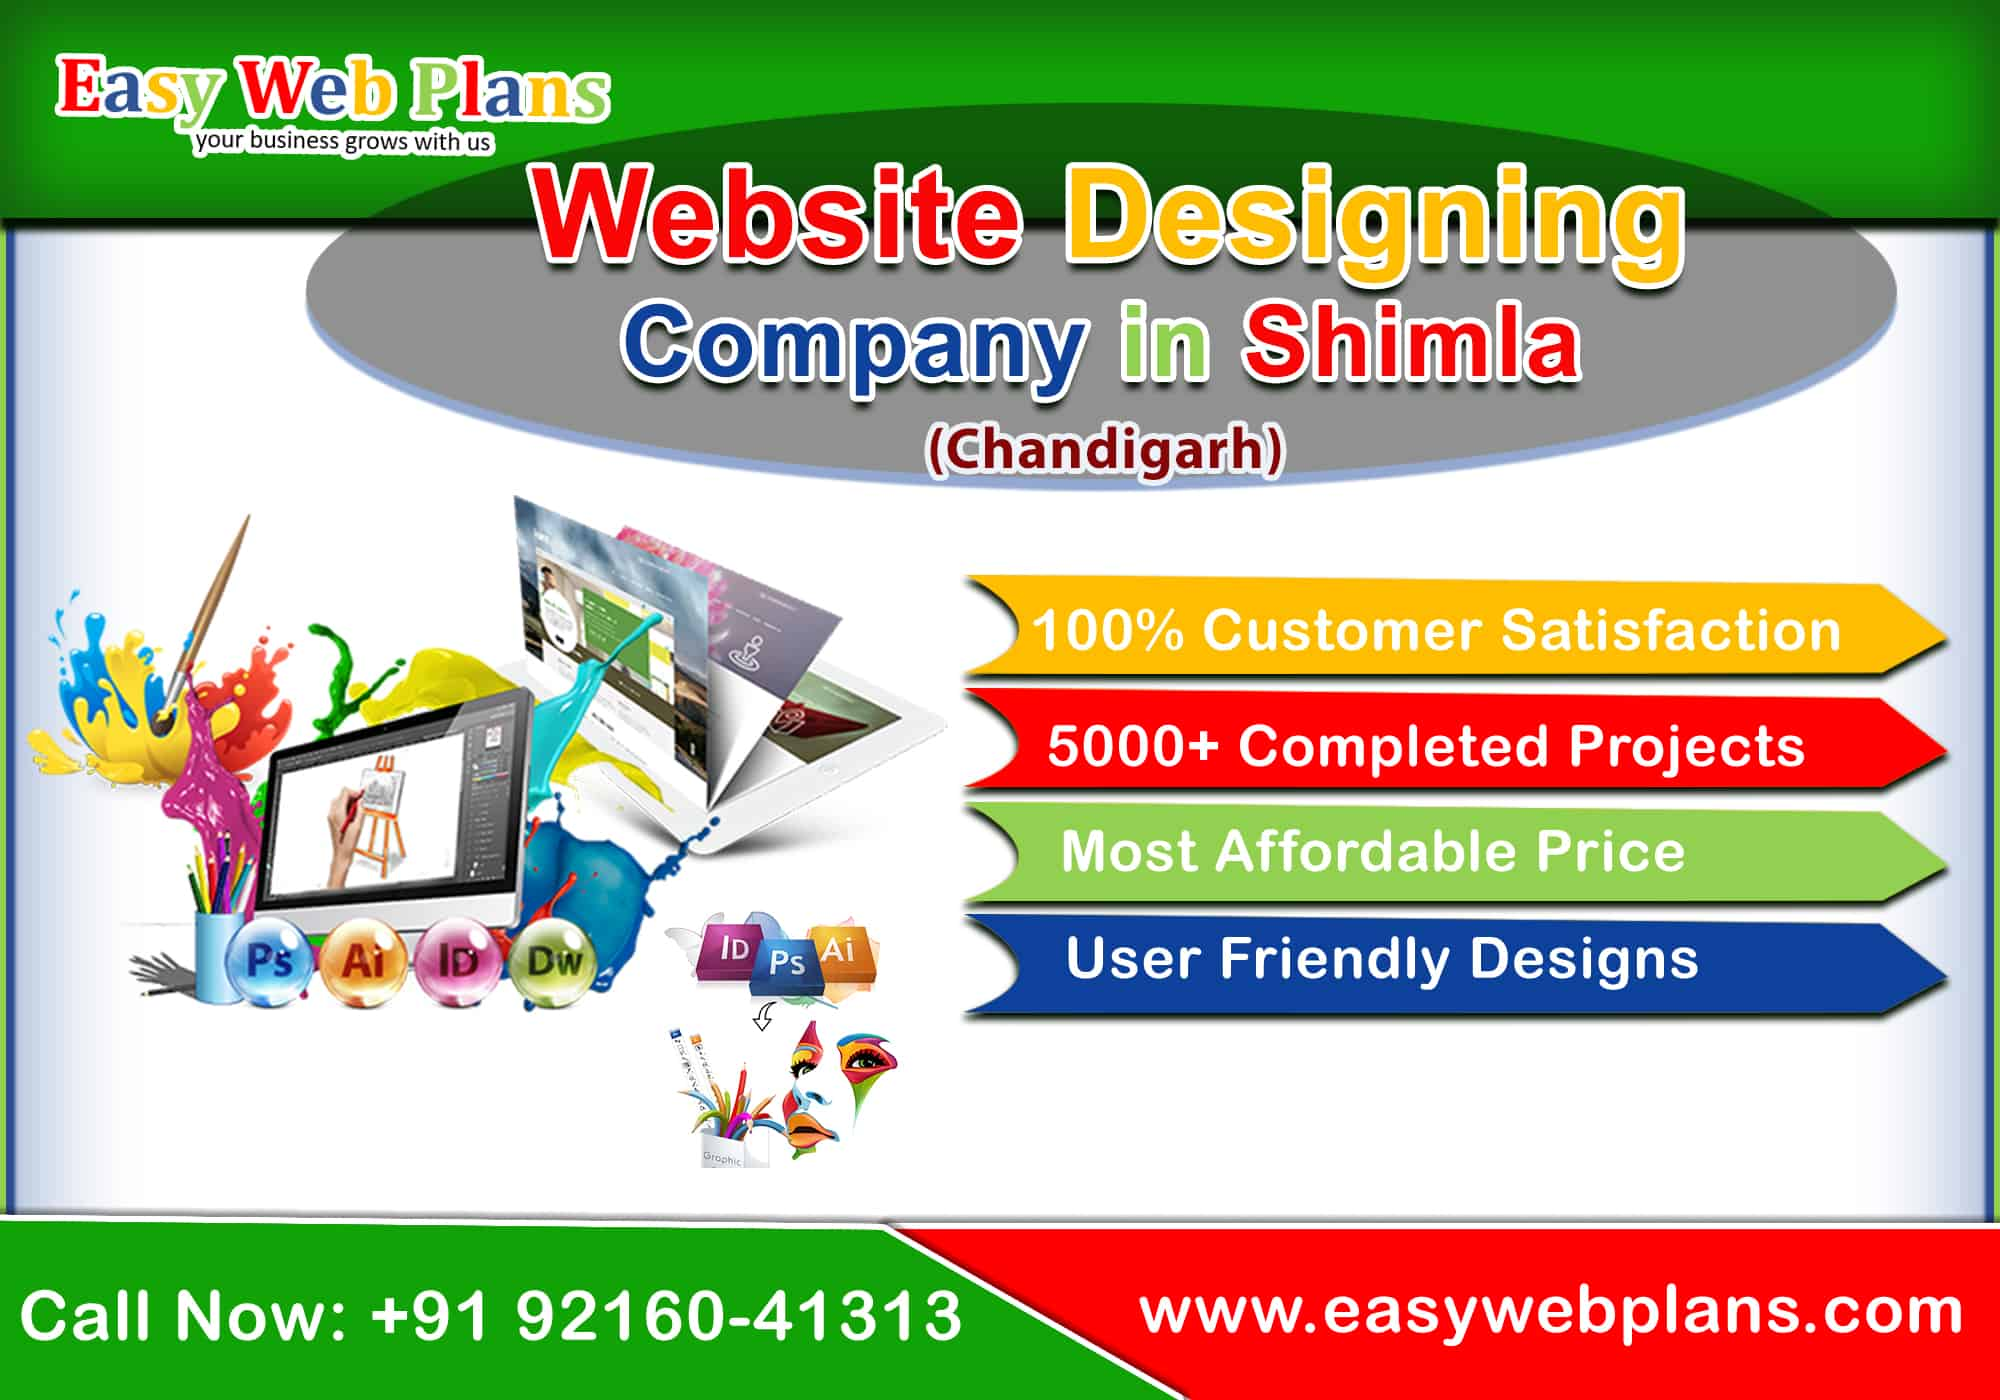 Website Designing Company in Shimla